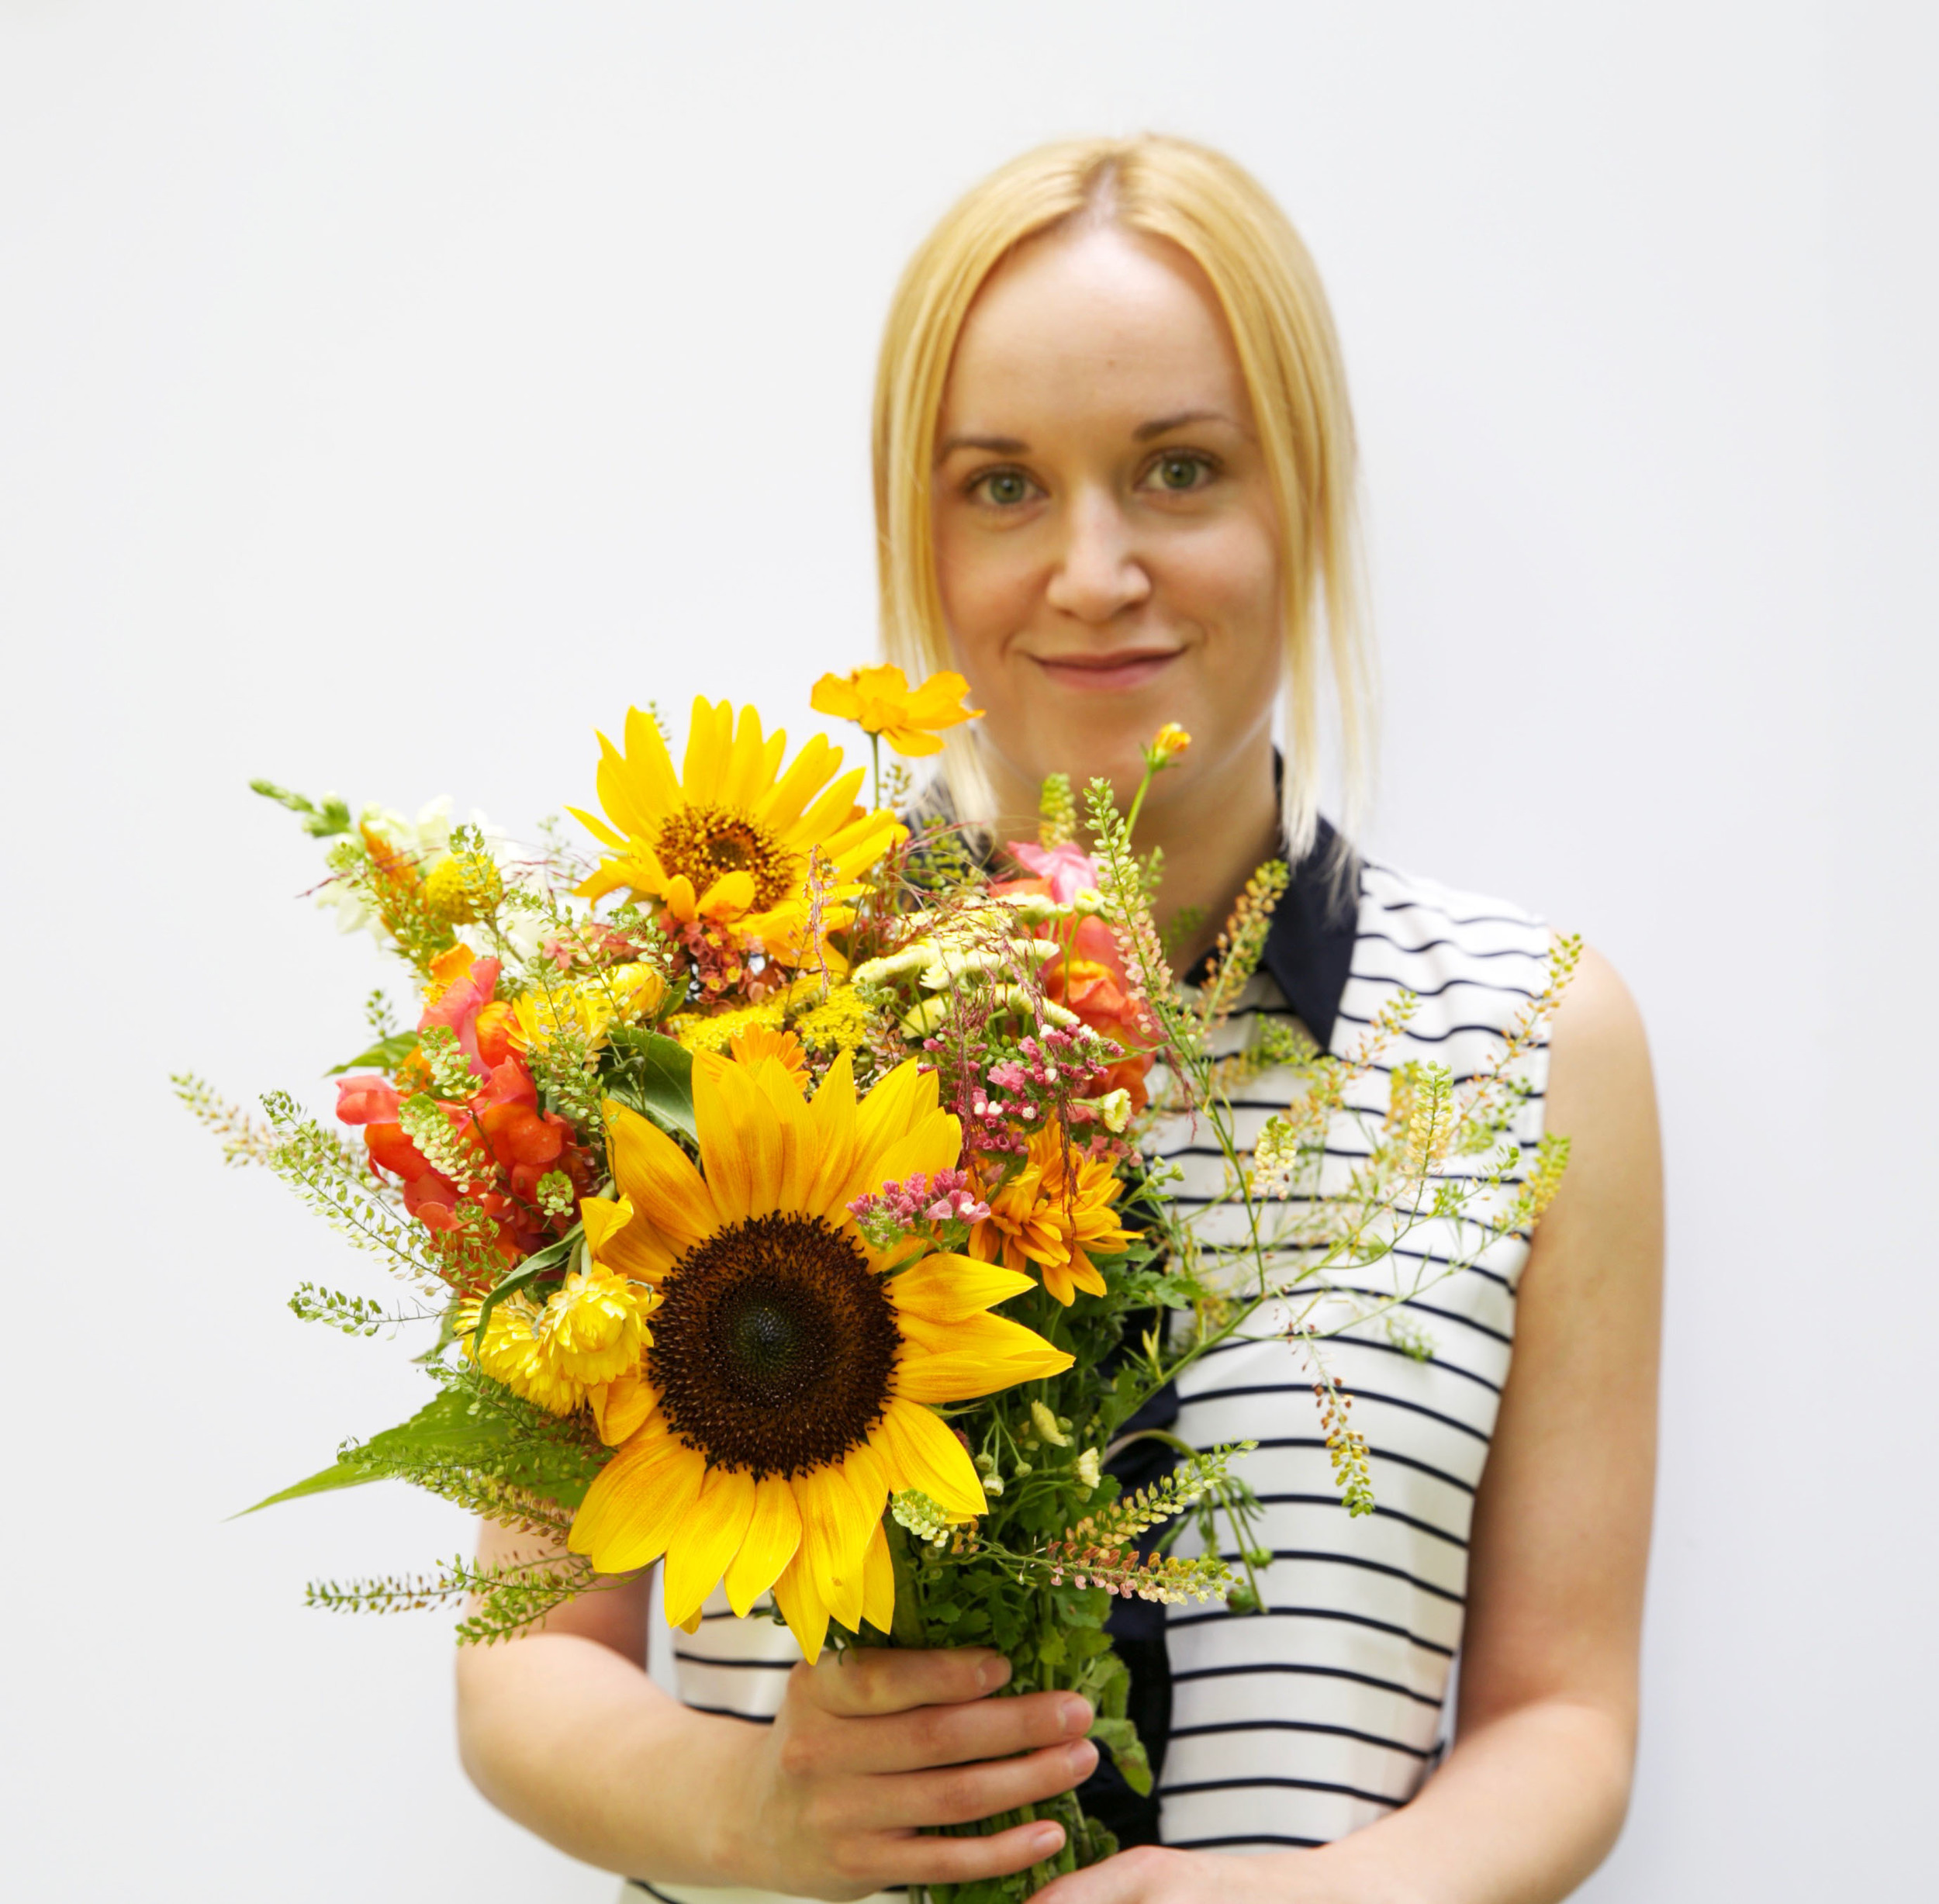 We asked our summer intern, Marta, to pose with the flowers since she matched them :)